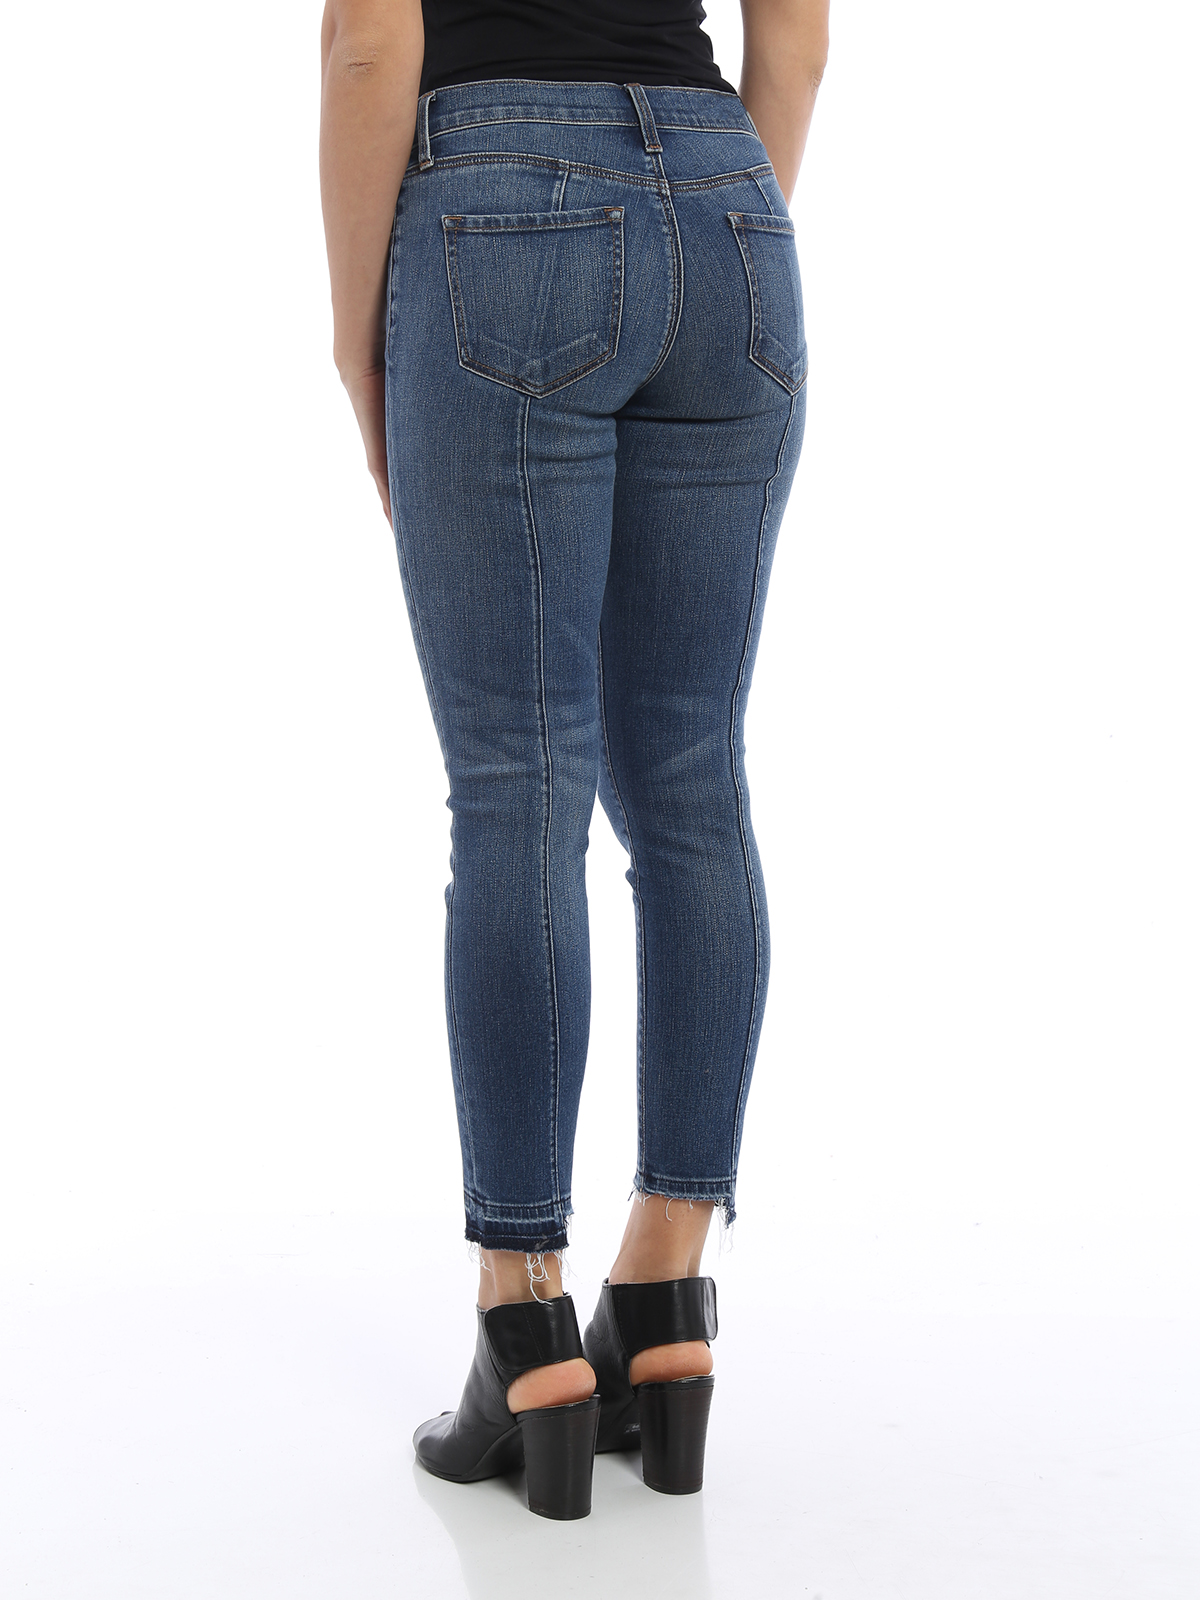 Skinny jeans with frayed bottom